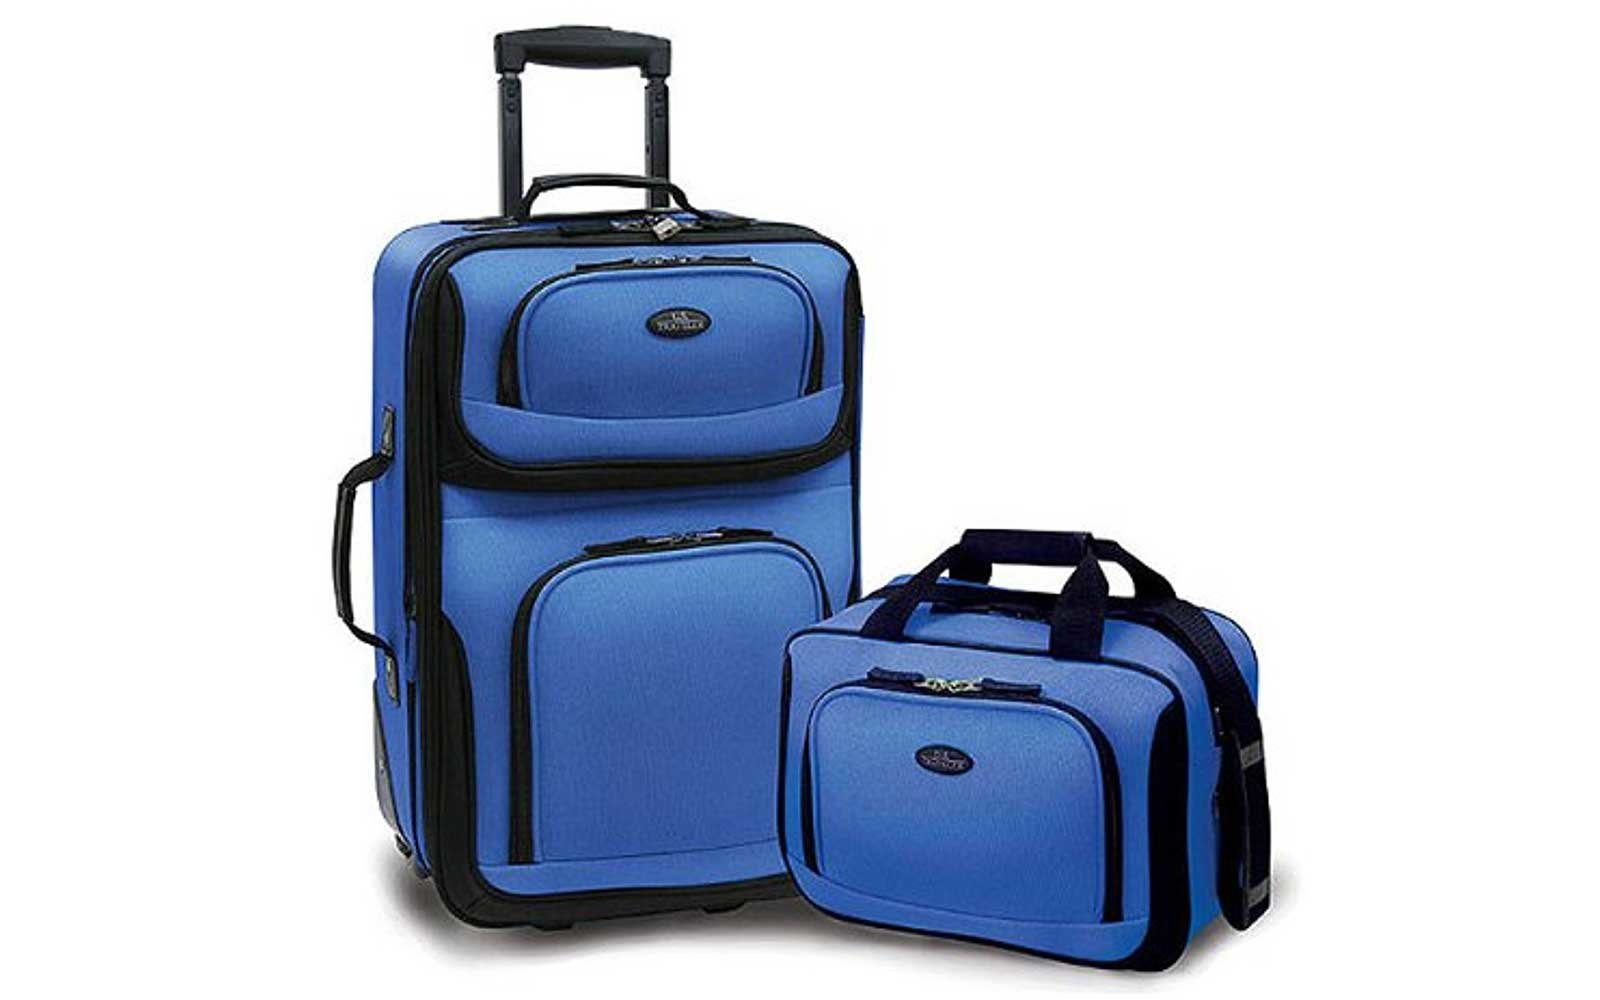 U.S Traveler Rio 2-Piece Expandable Luggage Set